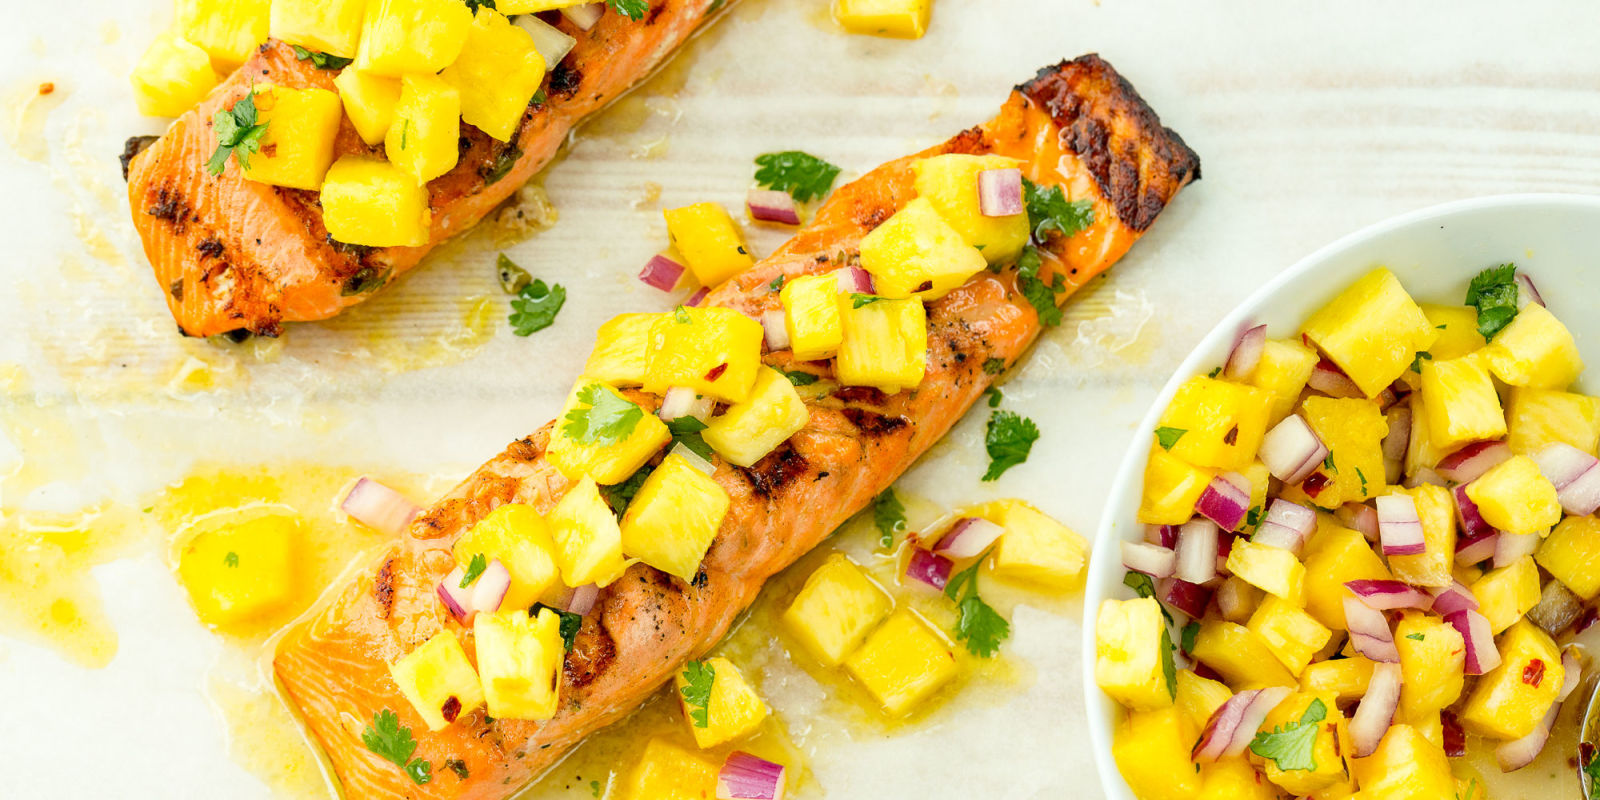 Best Grilled Salmon with Pineapple Salsa Recipe - Delish.com